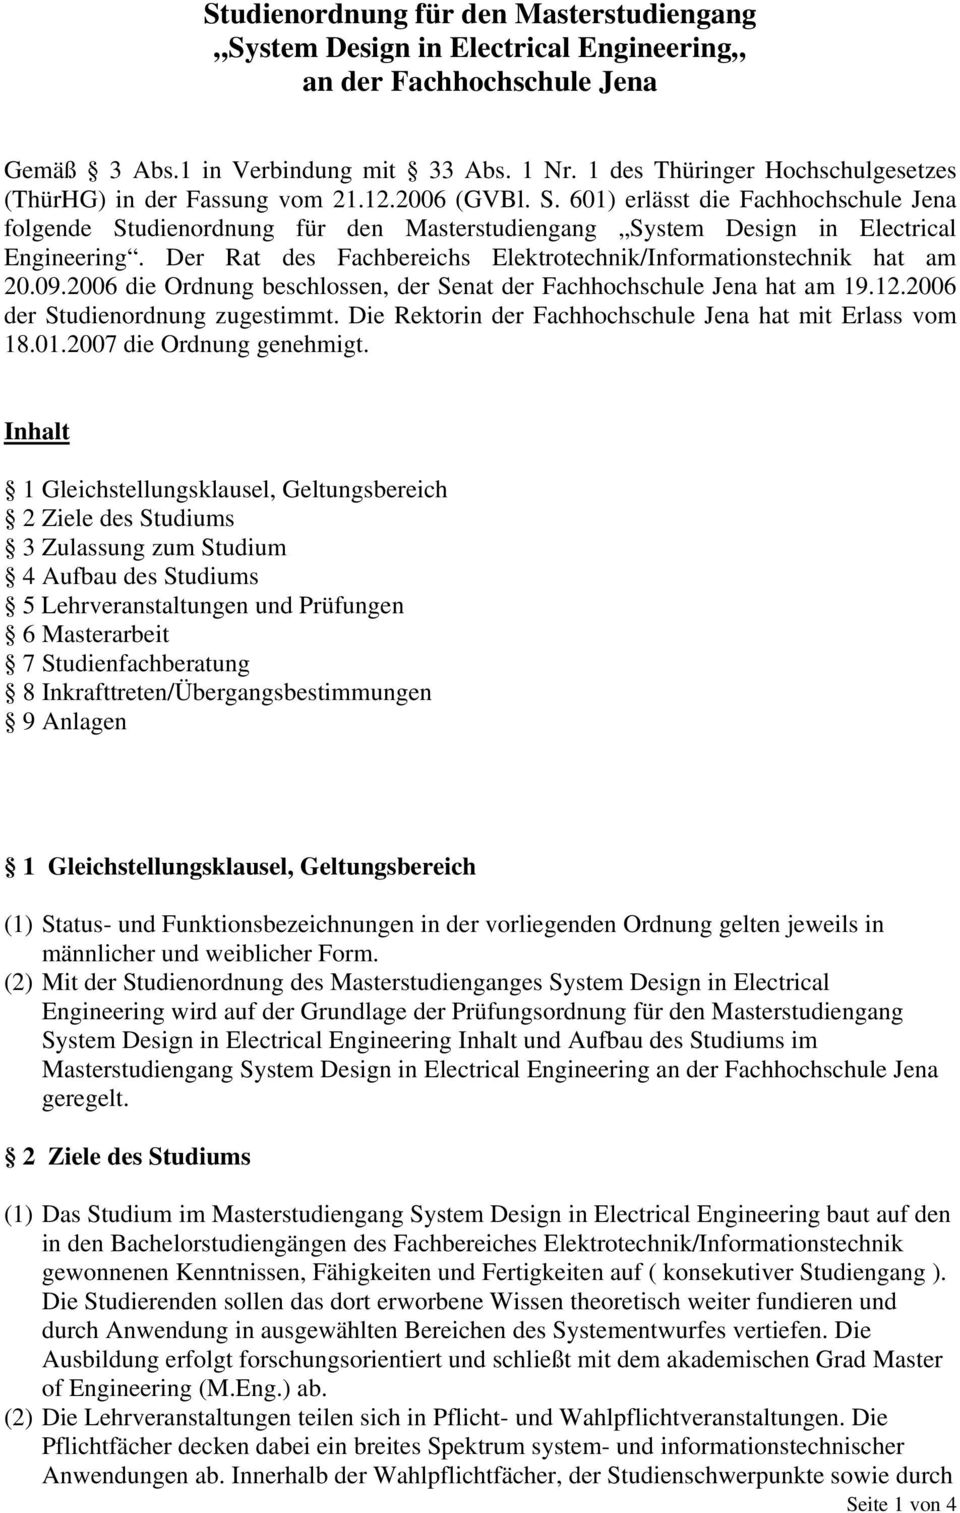 601) erlässt die Fachhochschule Jena folgende Studienordnung für den Masterstudiengang System Design in Electrical Engineering. Der Rat des Fachbereichs Elektrotechnik/Informationstechnik hat am 20.